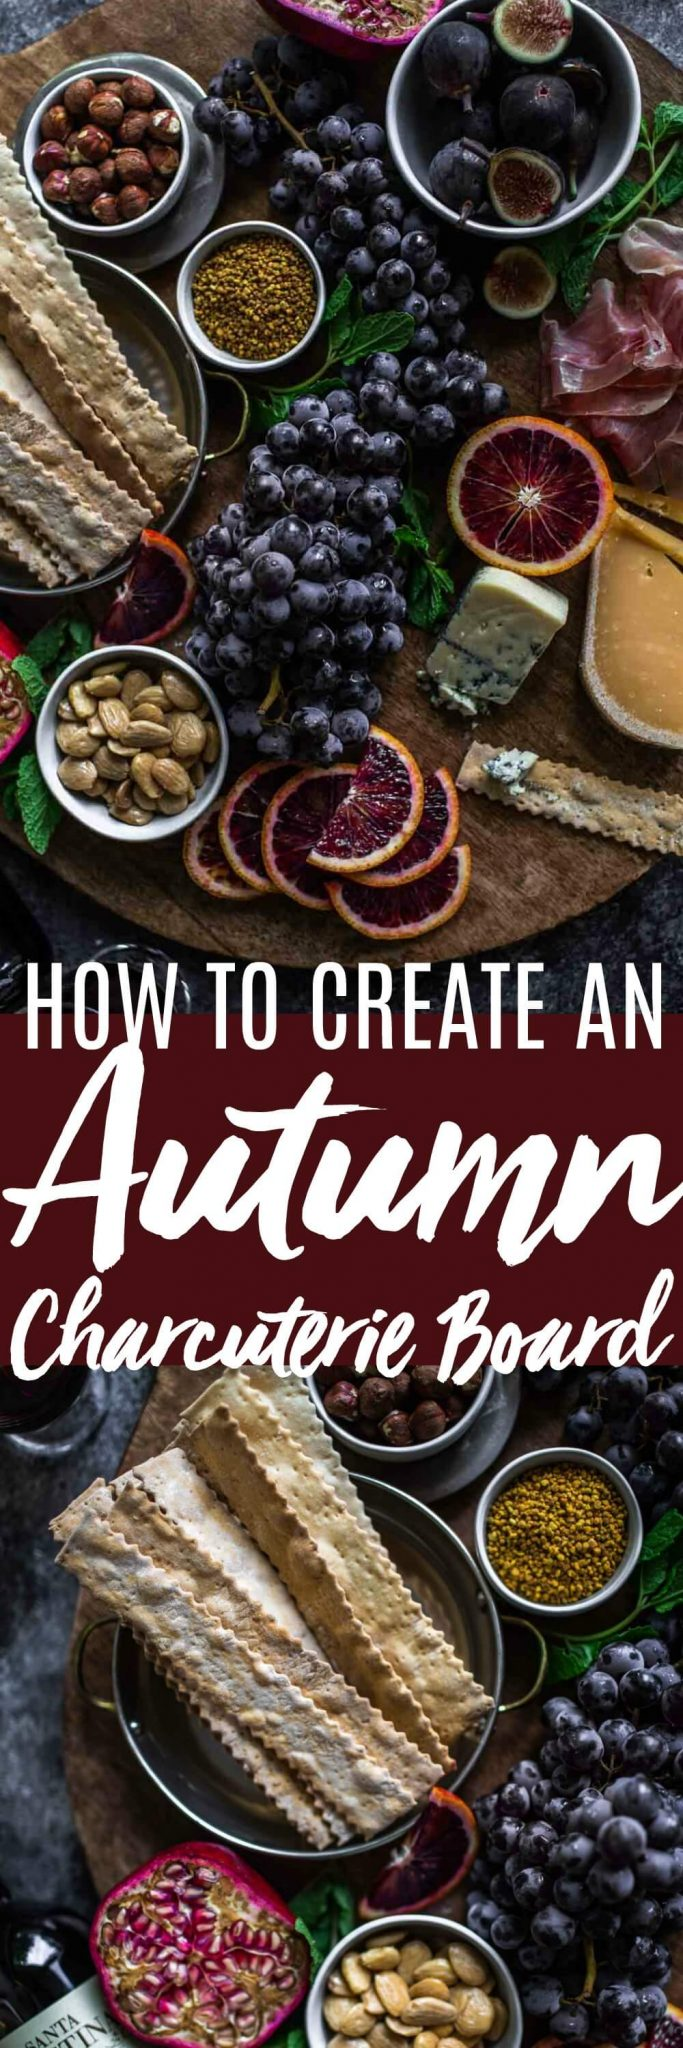 These Cheese Board Ideas for Fall will help you create a gorgeous charcuterie board that's perfect for the autumn season. #cheeseboard #appetizer #charcuterie